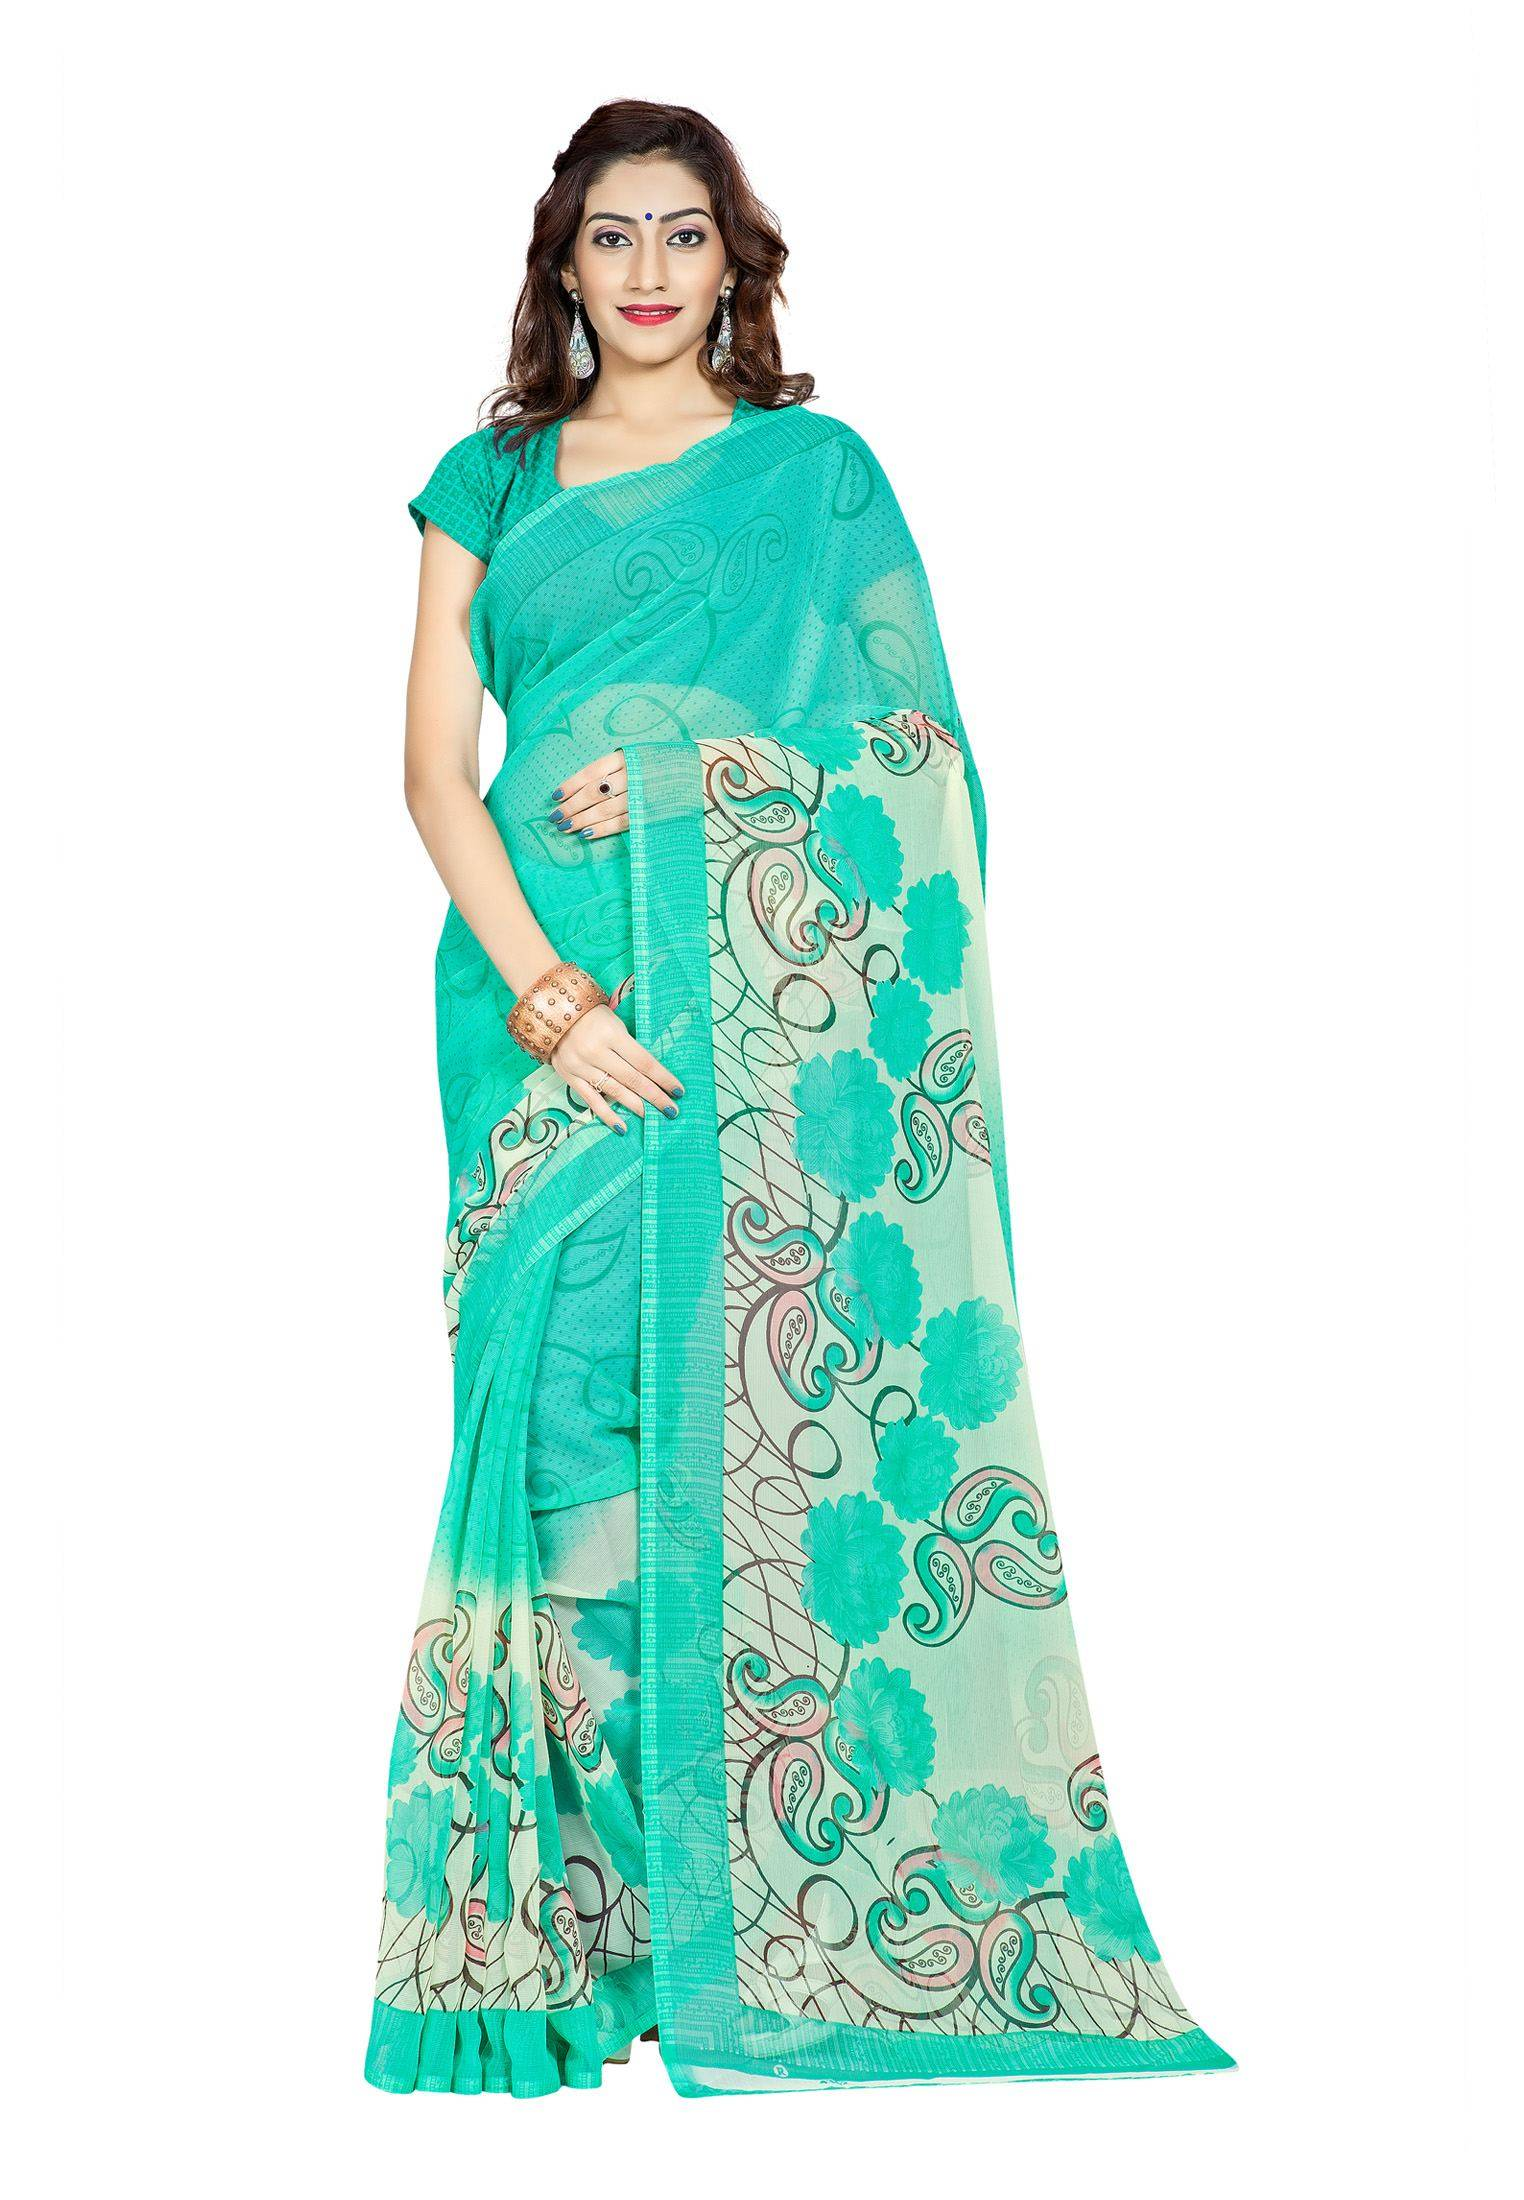 Ambaji Casual Wear Green Colored Printed Chiffon Saree/Sari